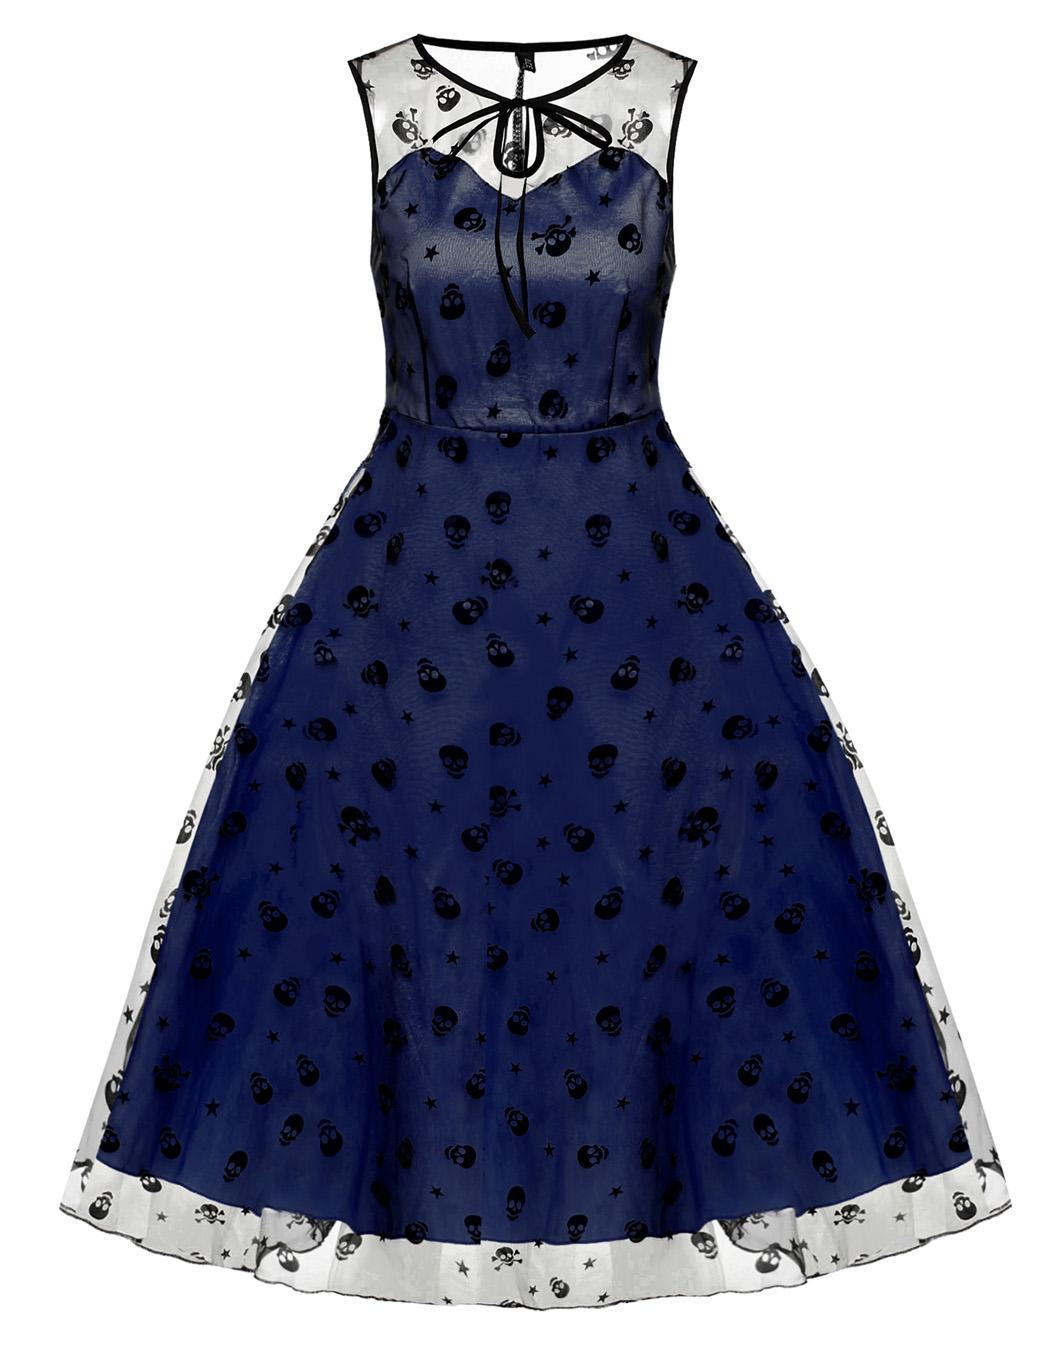 Retro Women Vintage Style Sleeveless Mesh Embroidery Long Party Cocktail Dress 0